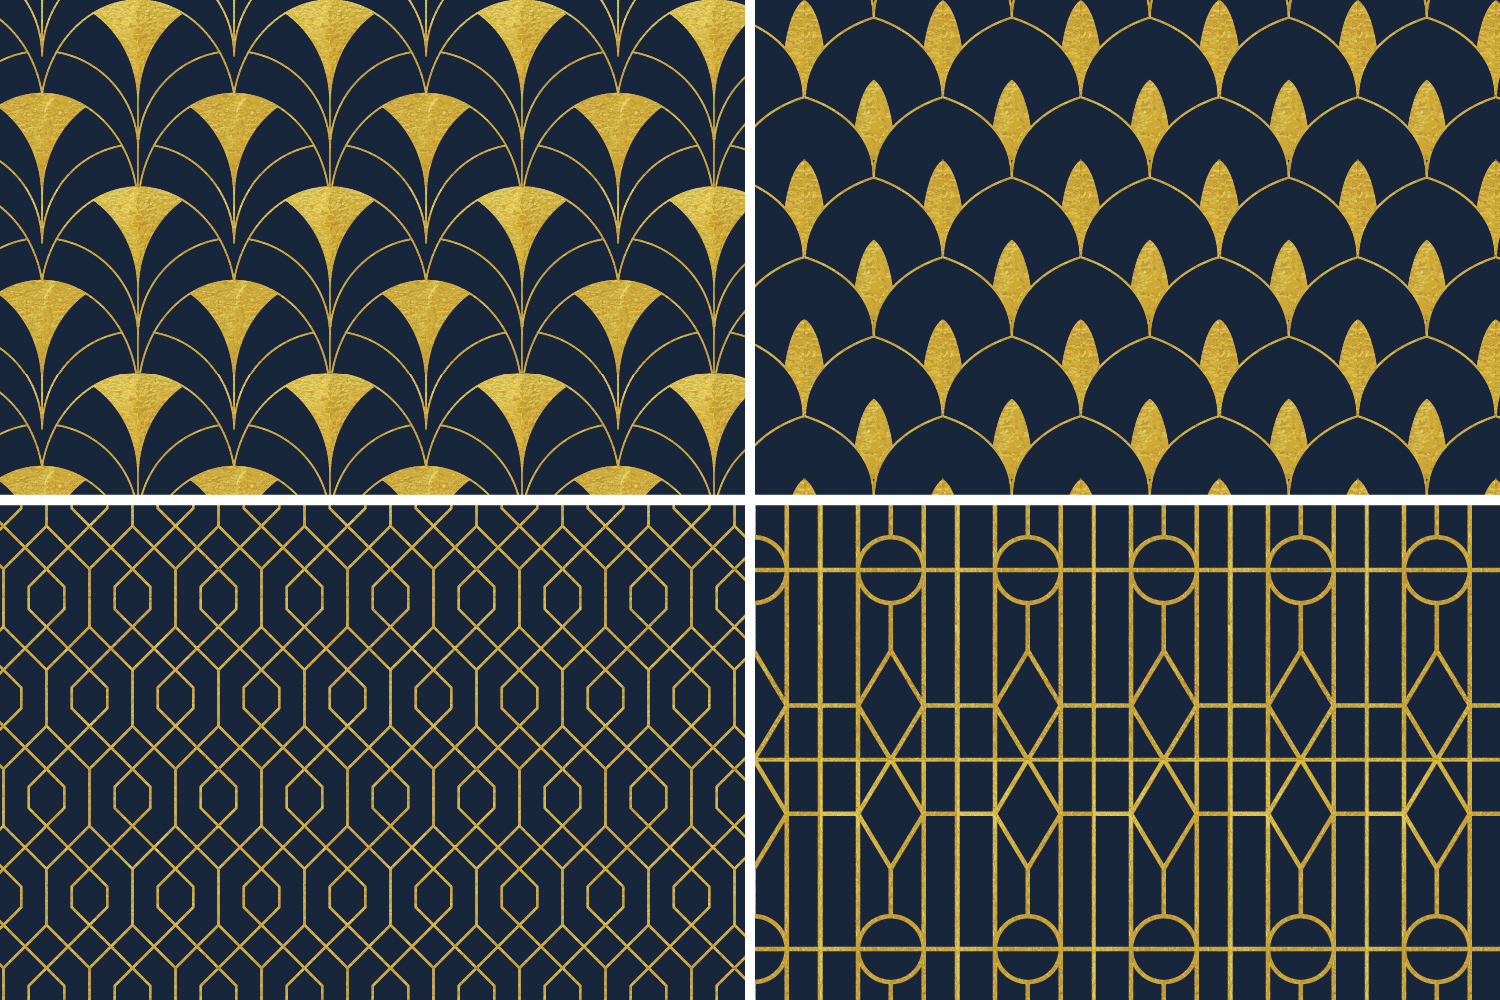 8 Seamless Art Deco Patterns - Gold & Navy Blue - Set 3 example image 6